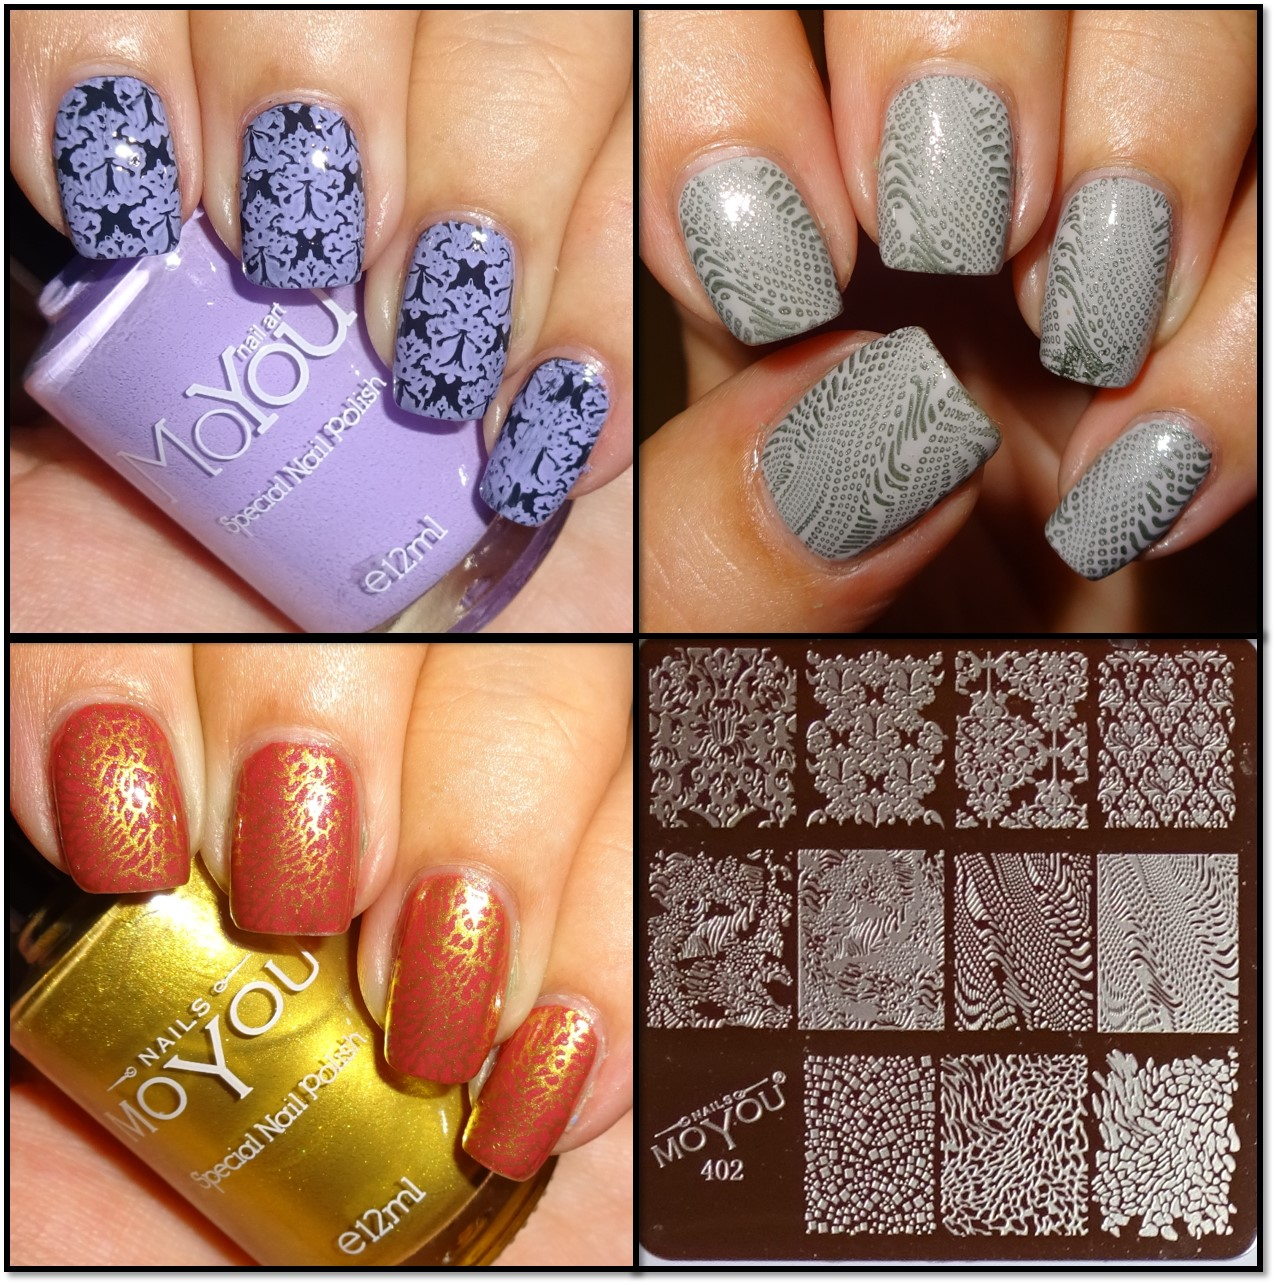 Wendys delights moyou nails stamping plate 402 heres a selection of my manis using moyou nails plate 402 and moyou nails stamping polishes ill add to this post each time i use the plate prinsesfo Choice Image